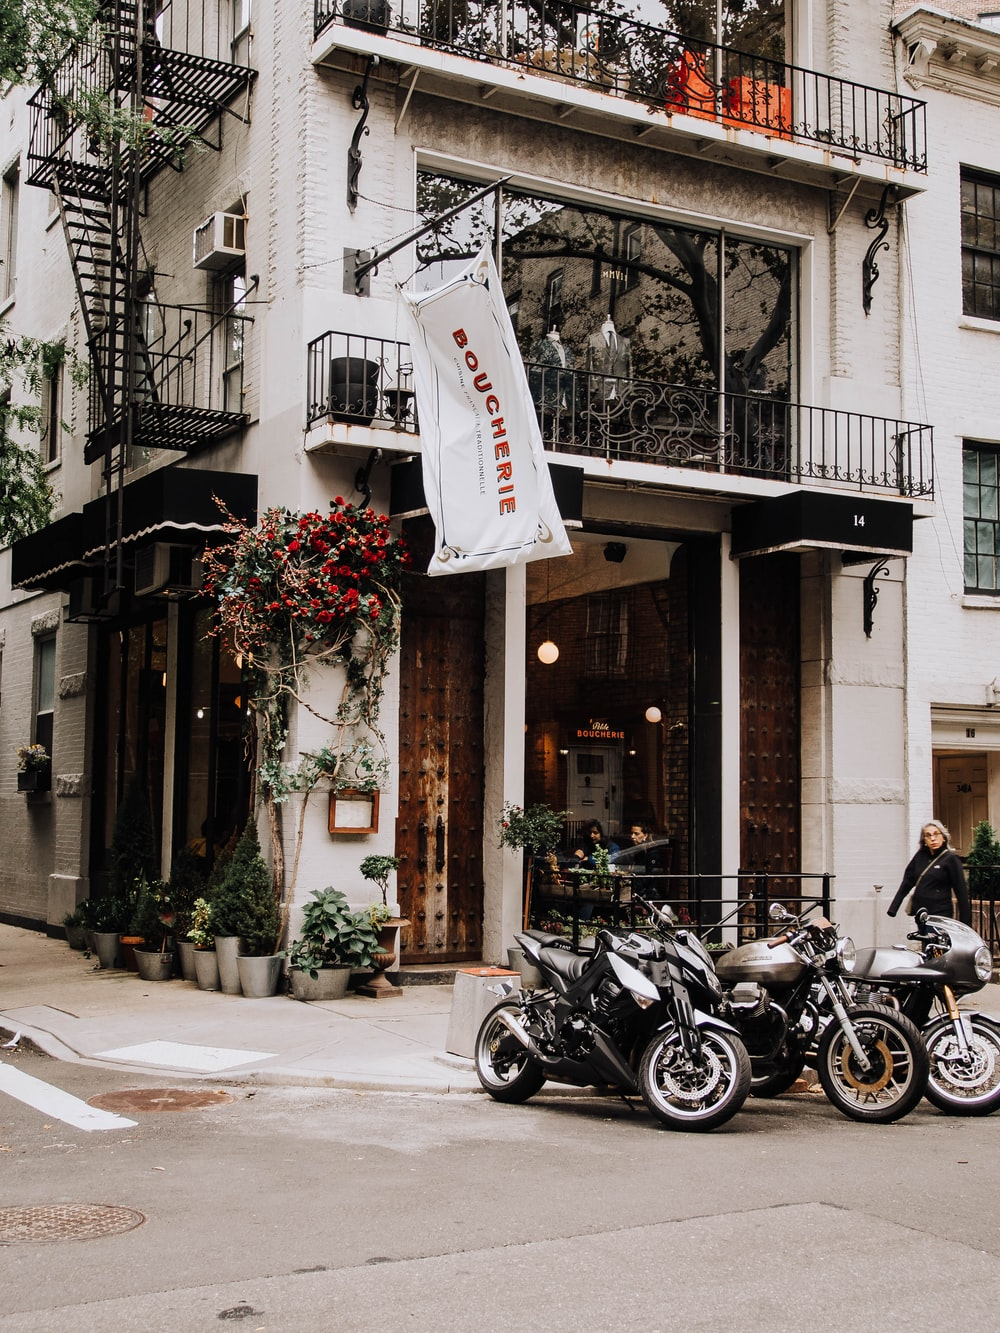 three motorcycles parked near white building